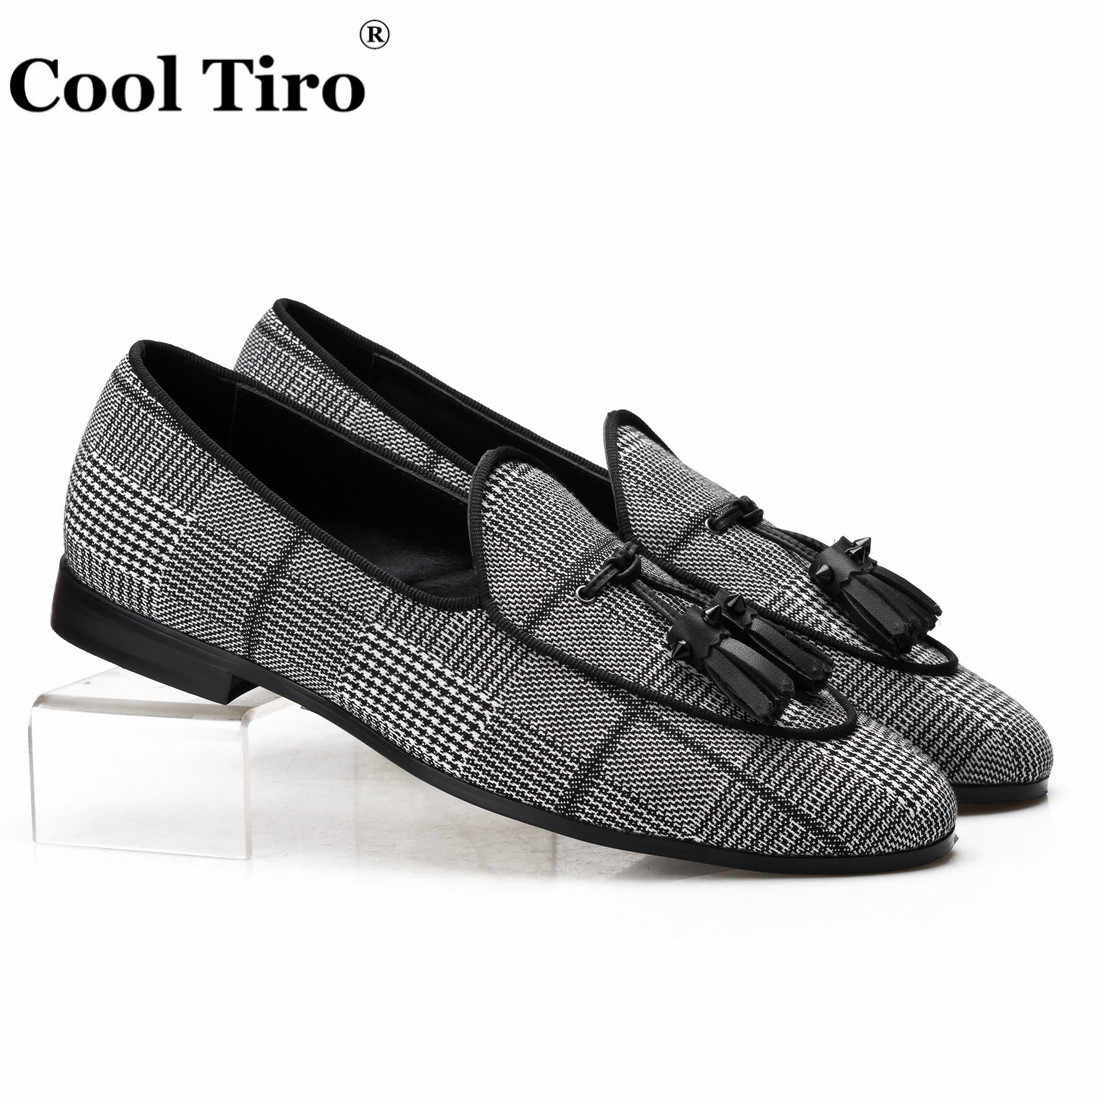 Cool Tiro Gingham Canvas Belgian Loafers Men's Smoking Slippers Moccasins Dress Shoes With Tassels Genuine Leather Casual Shoes